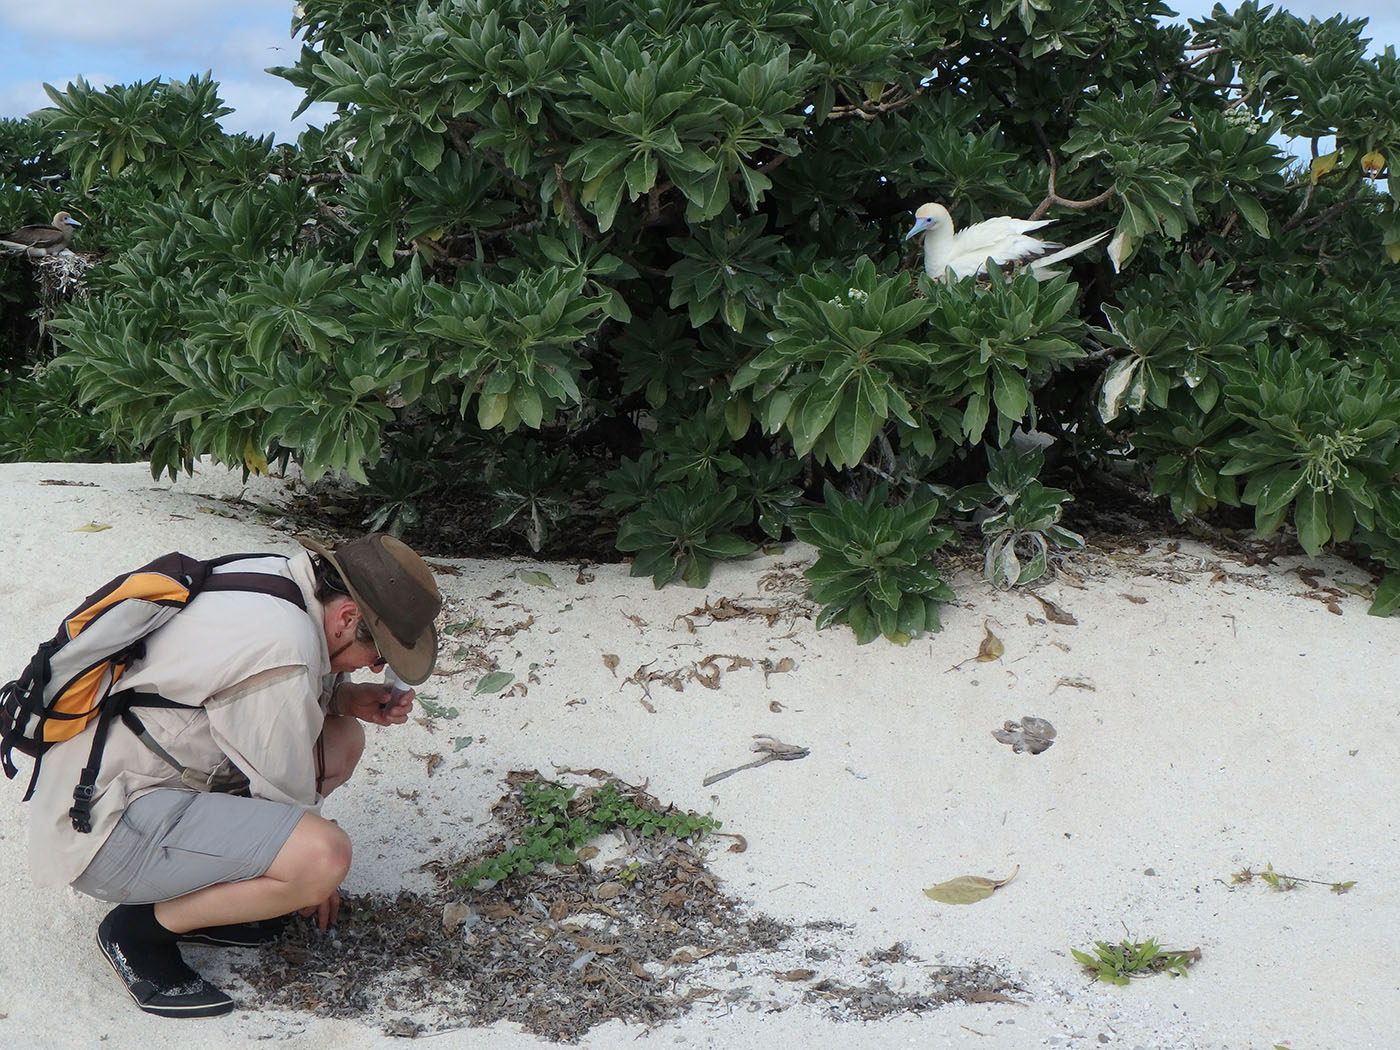 Barbara searching for spiders amongst the leaf litter